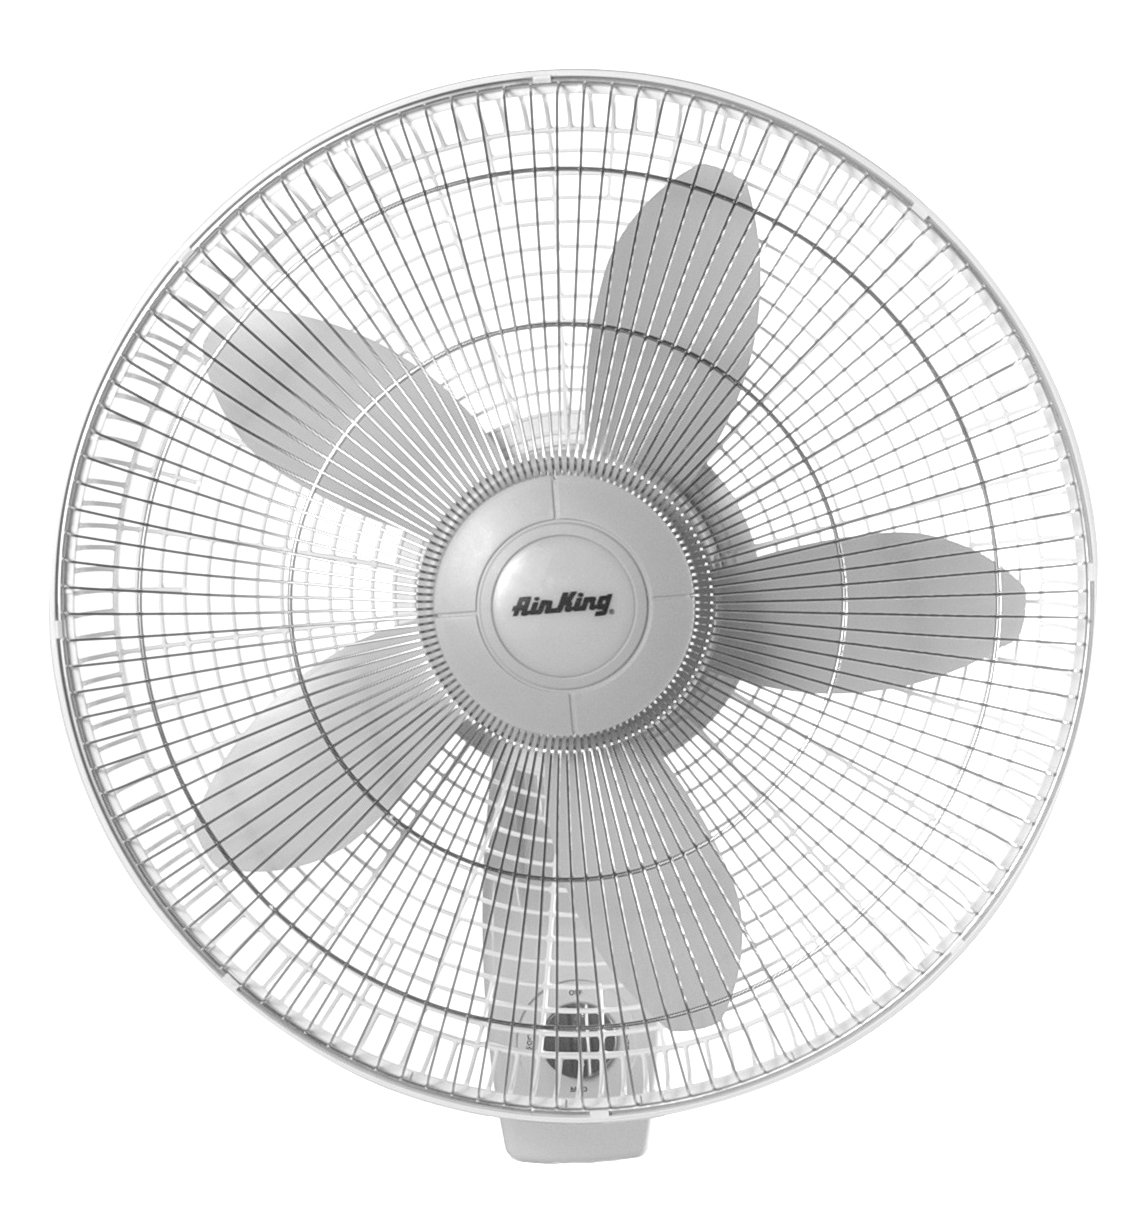 Air King 9018 Commercial Grade Oscillating Wall Mount Fan, 18-Inch by Air King